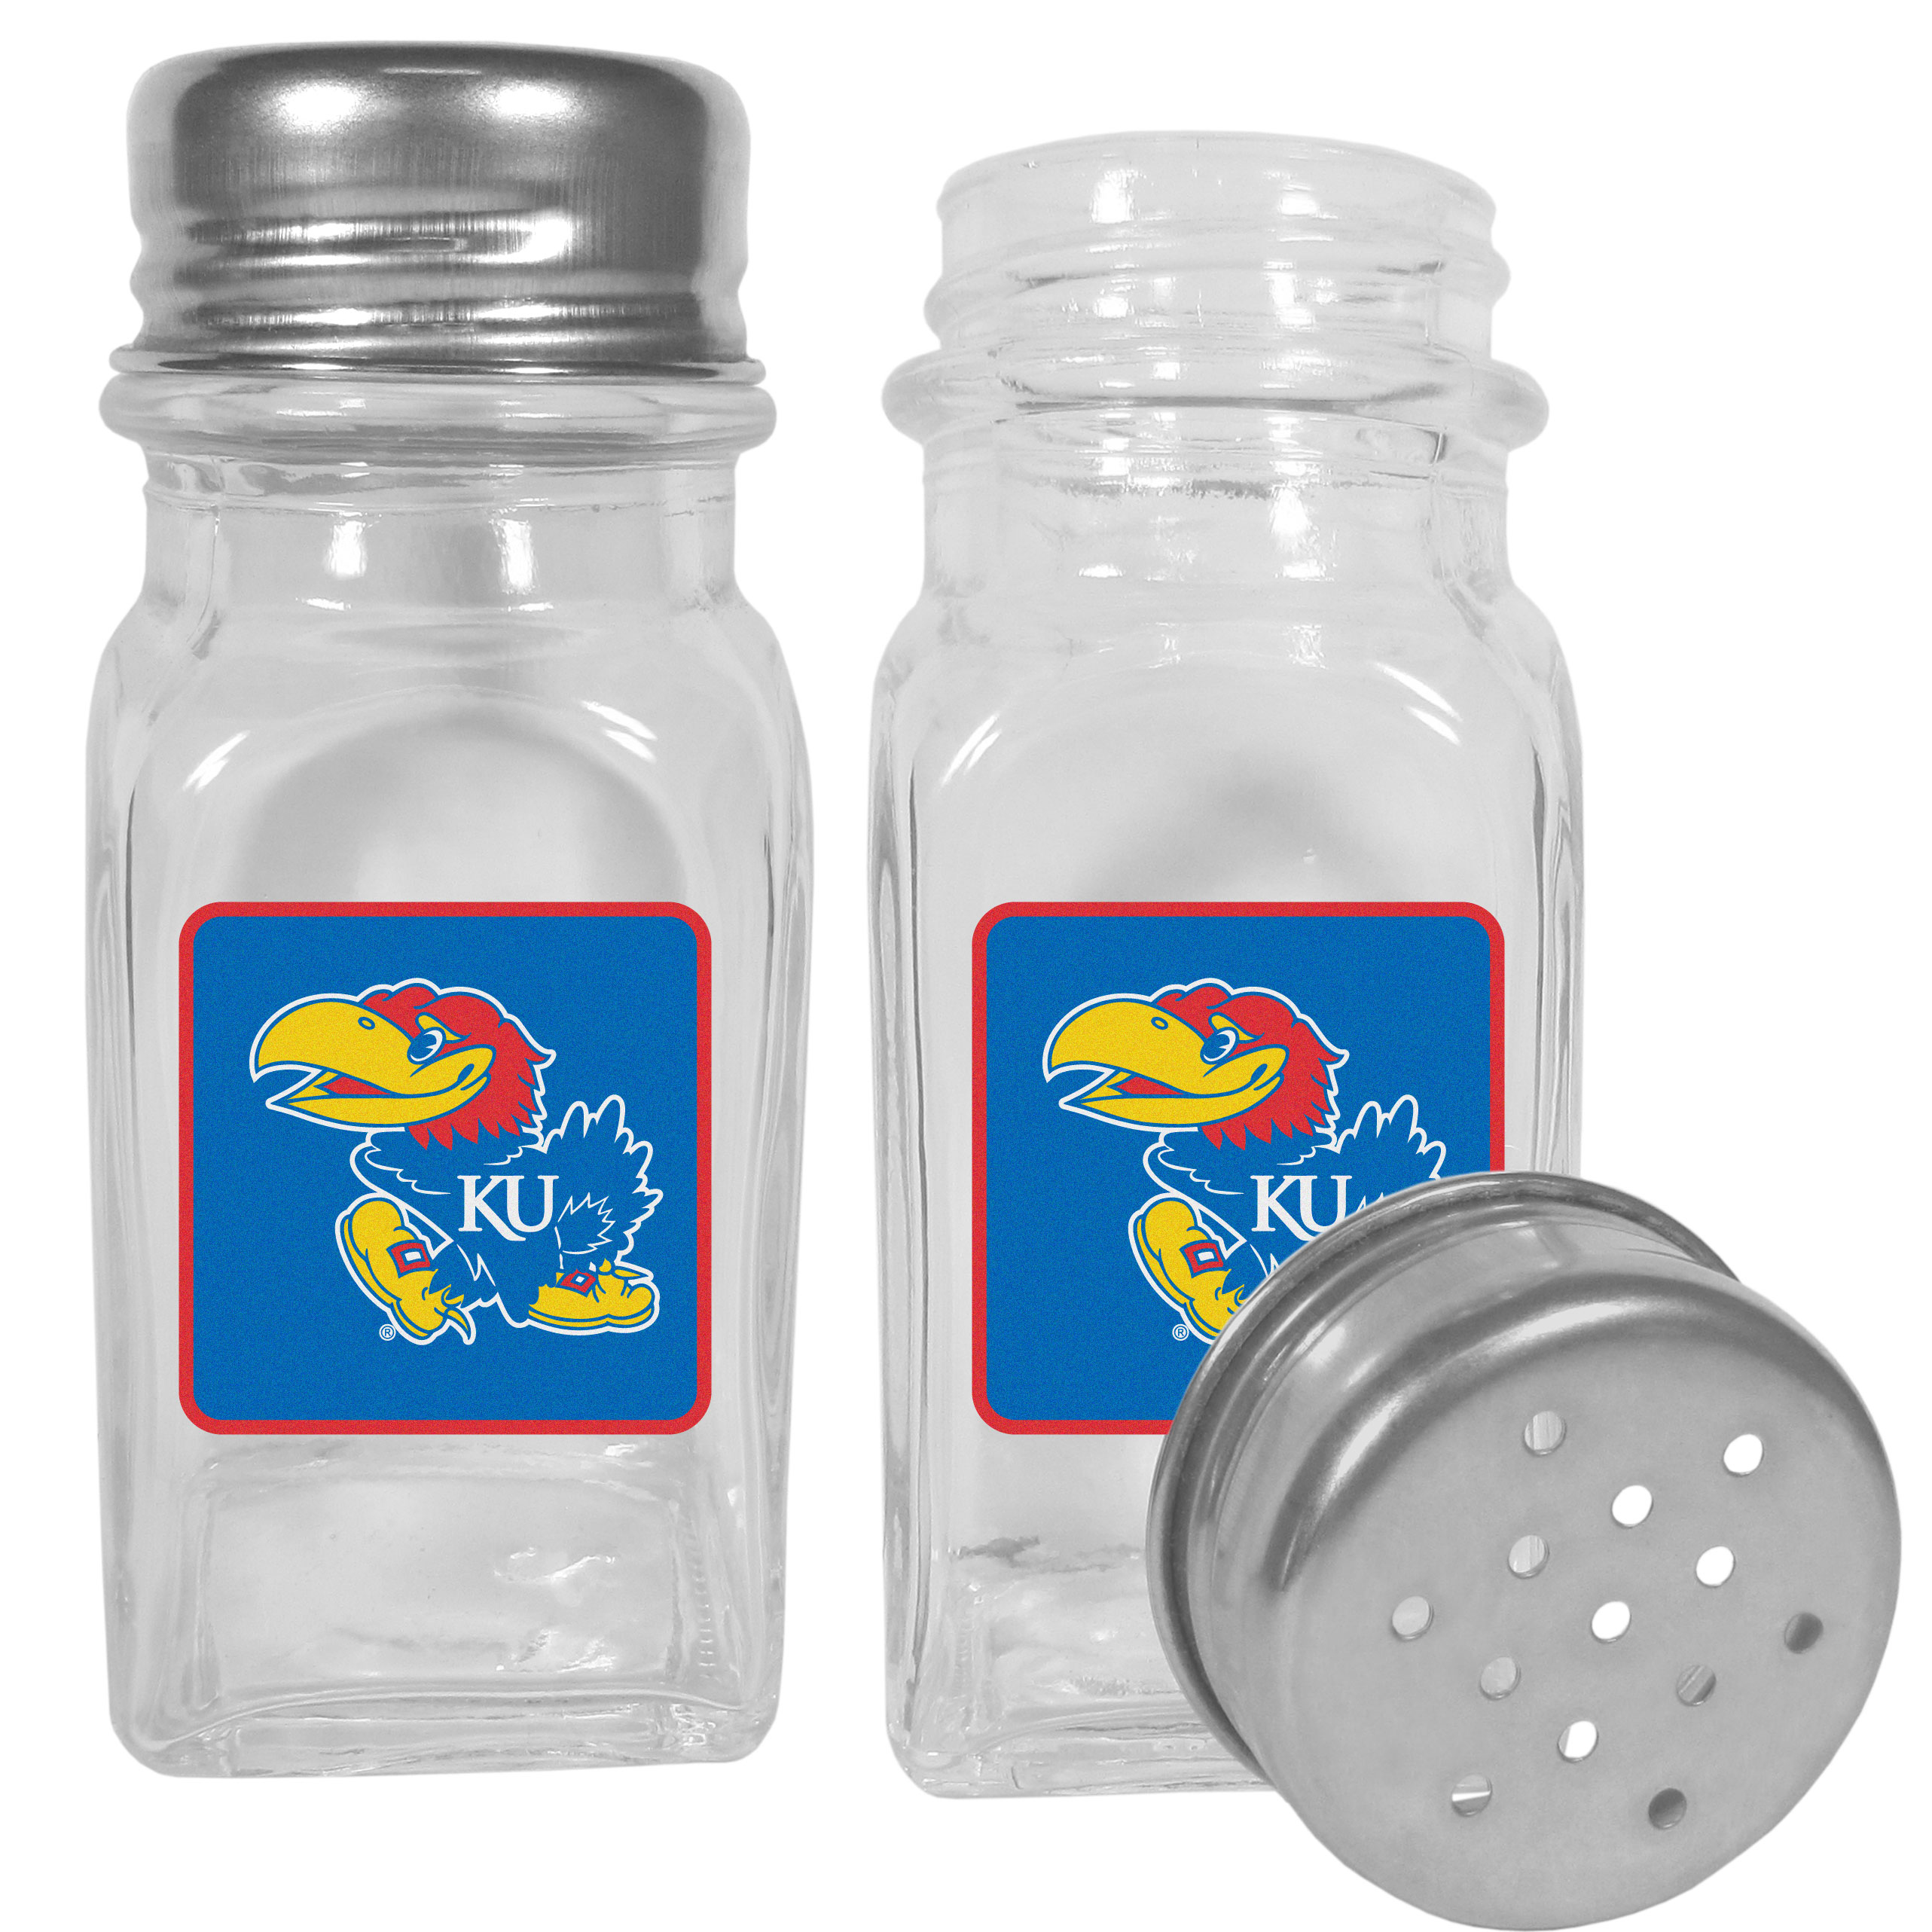 Kansas Jayhawks Graphics Salt & Pepper Shaker - No tailgate party is complete without your Kansas Jayhawks salt & pepper shakers featuring bright team logos. The diner replica salt and pepper shakers are glass with screw top lids. These team shakers are a great grill accessory whether you are barbecuing on the patio, picnicing or having a game day party.